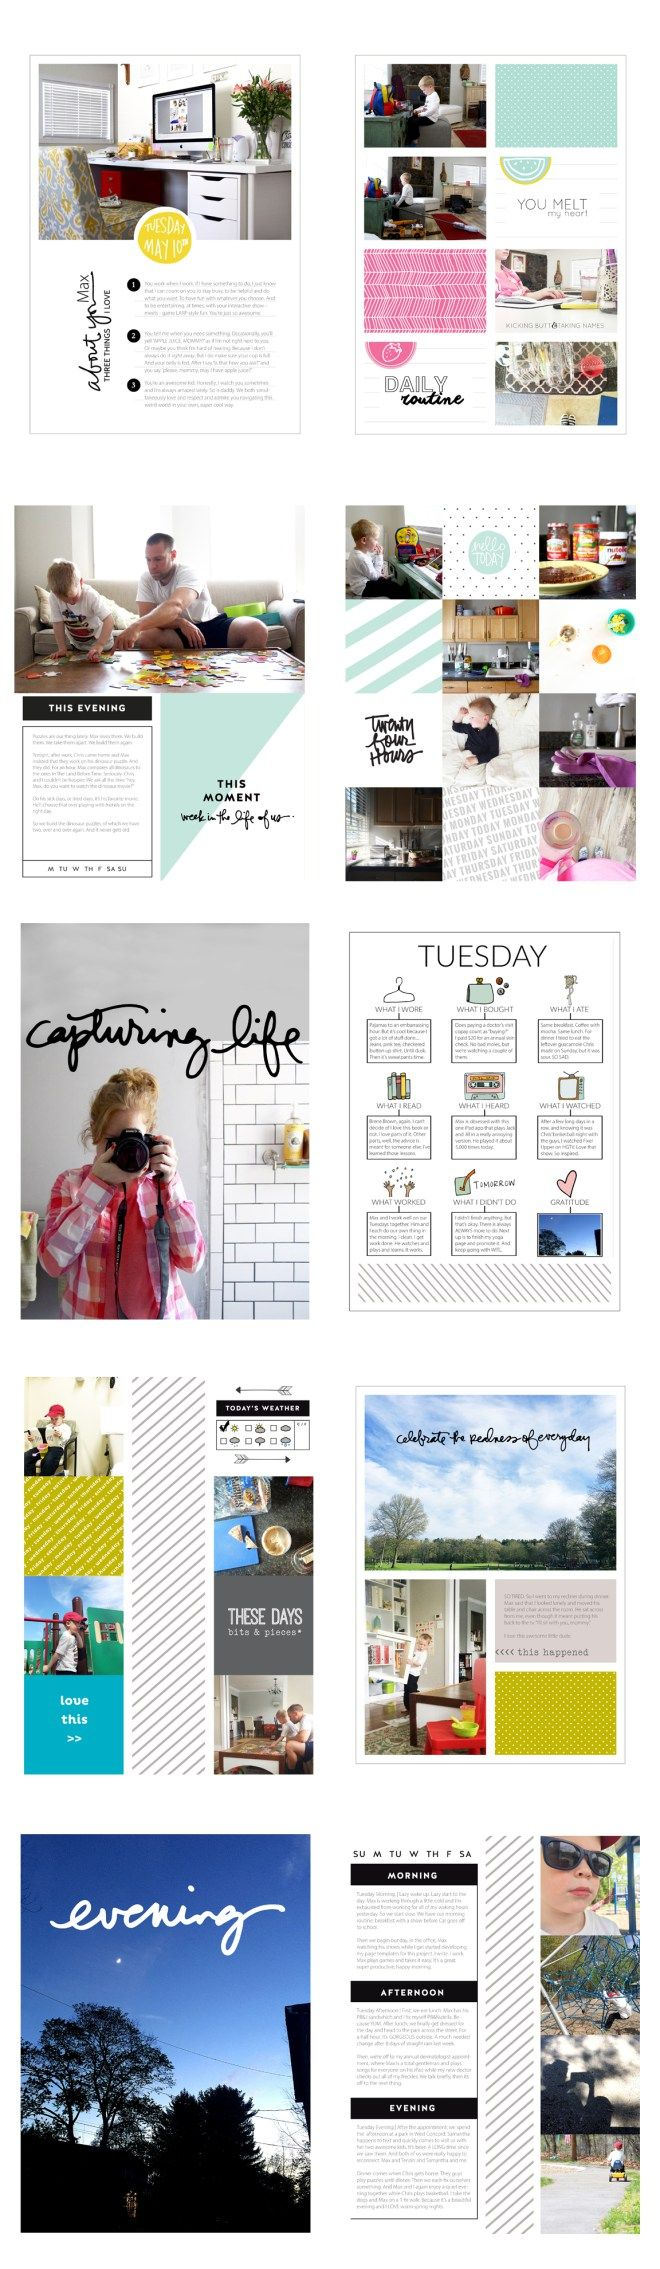 Week in the Life 2016 by Julie Love Gagen using digital Ali Edwards files and Project Life